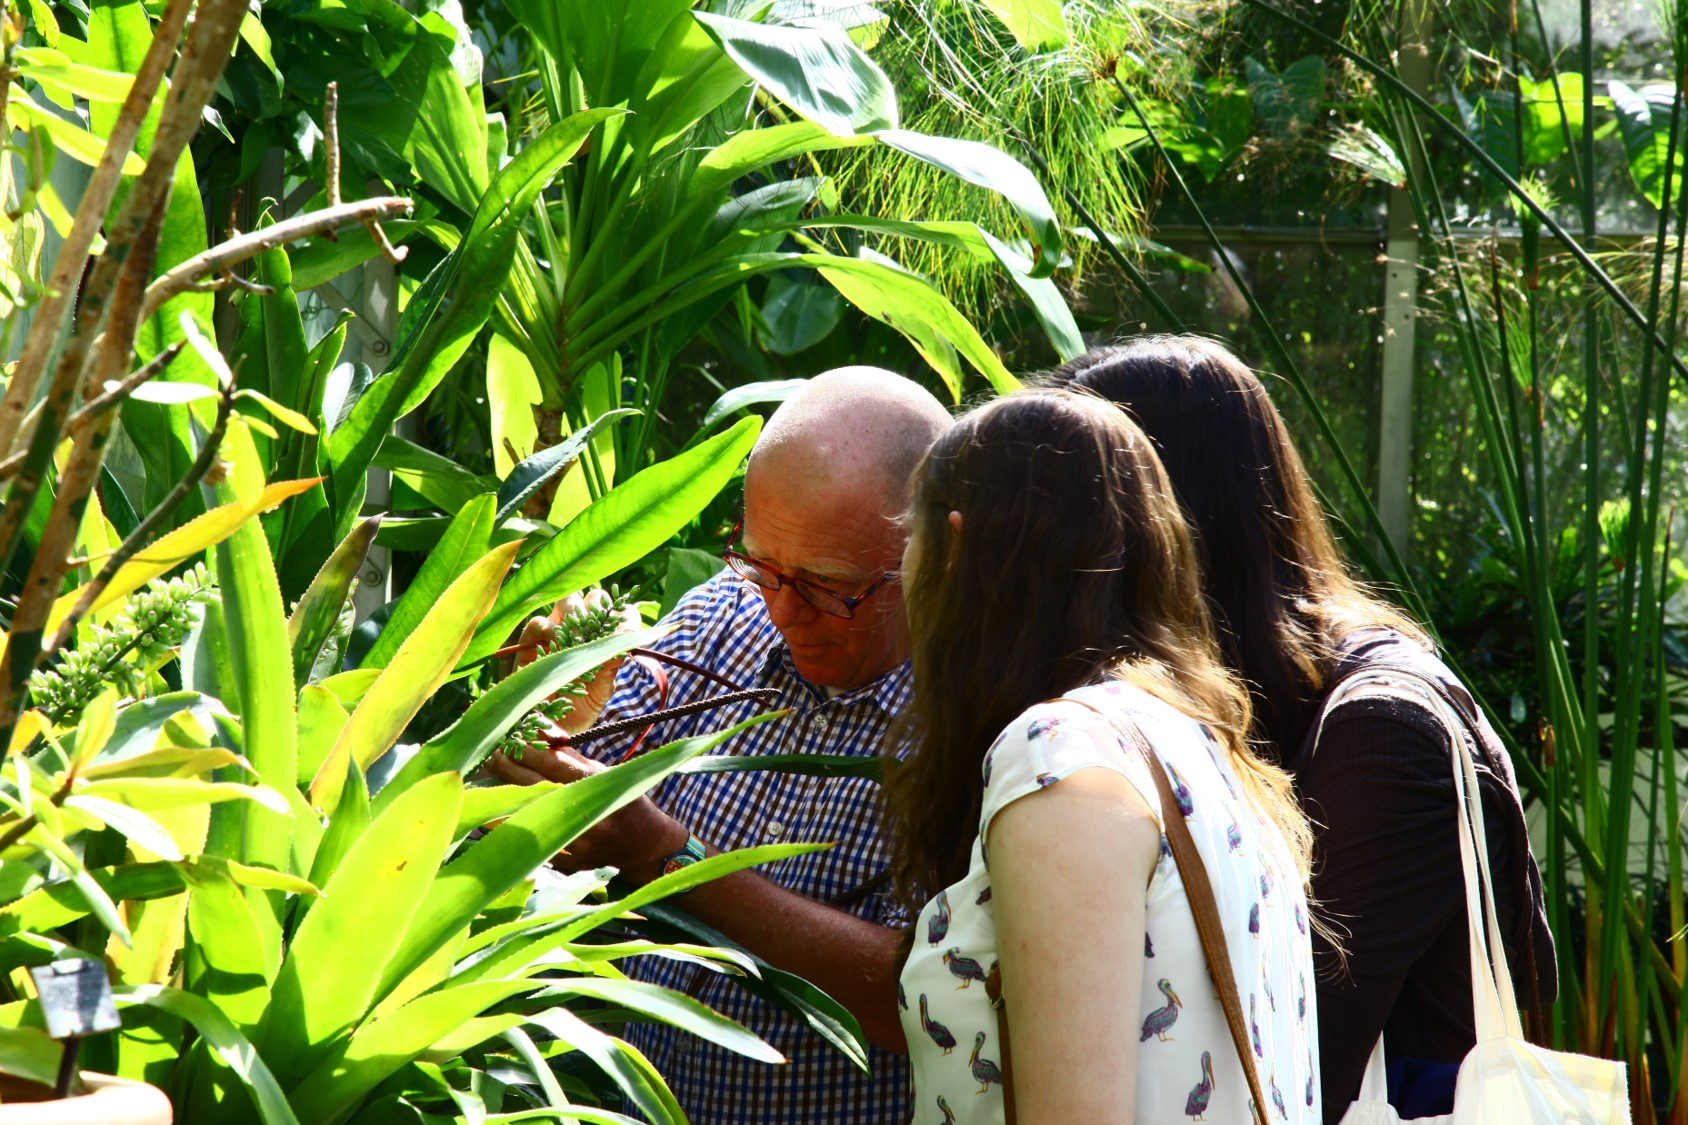 A tutor shows a plant to students in the Oxford Botanic Garden